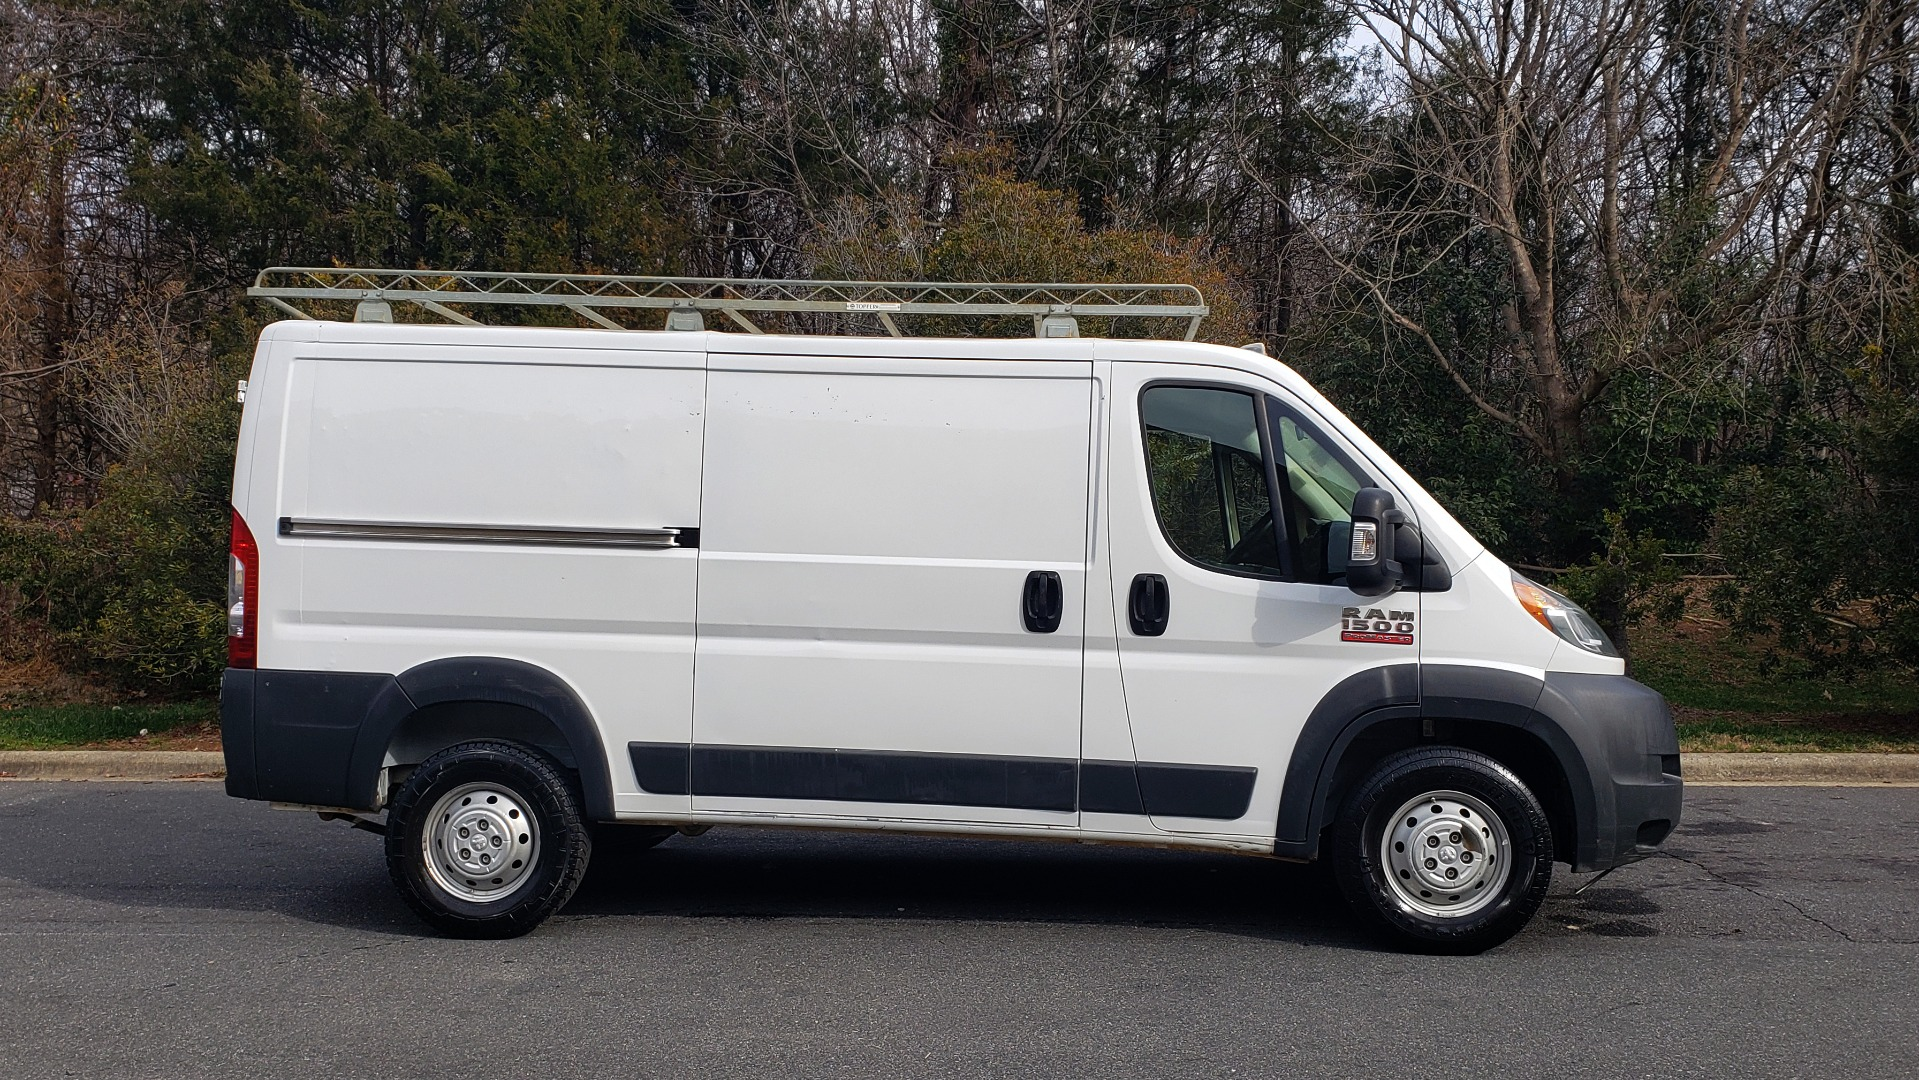 Used 2016 Ram PROMASTER CARGO VAN 136 WB / LOW ROOF / 3.6L V6 / 6-SPD AUTO / REARVIEW for sale $17,500 at Formula Imports in Charlotte NC 28227 4